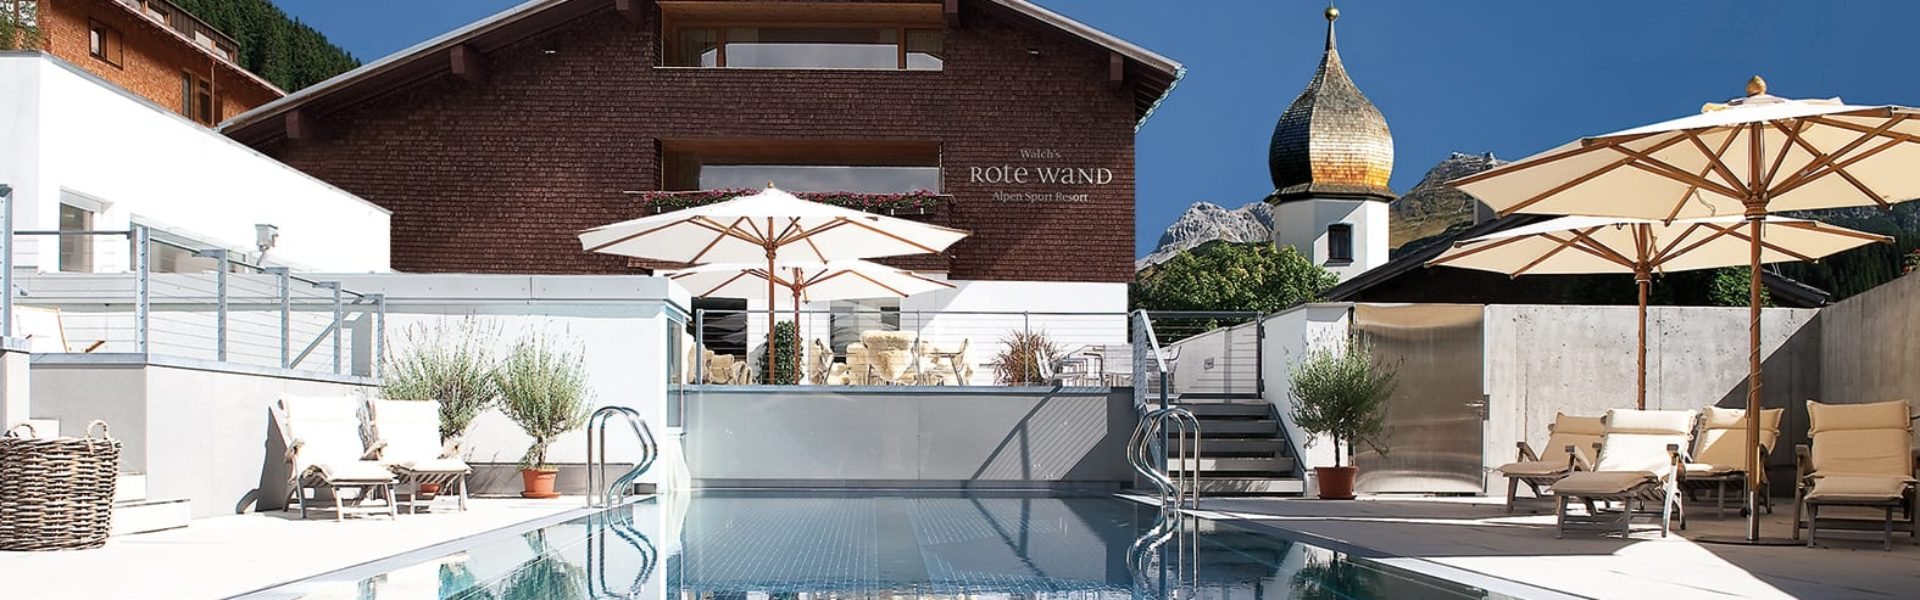 Top Family Familienhotel Rote Wand, Lech am Arlberg, Pool © Hotel Rote Wand